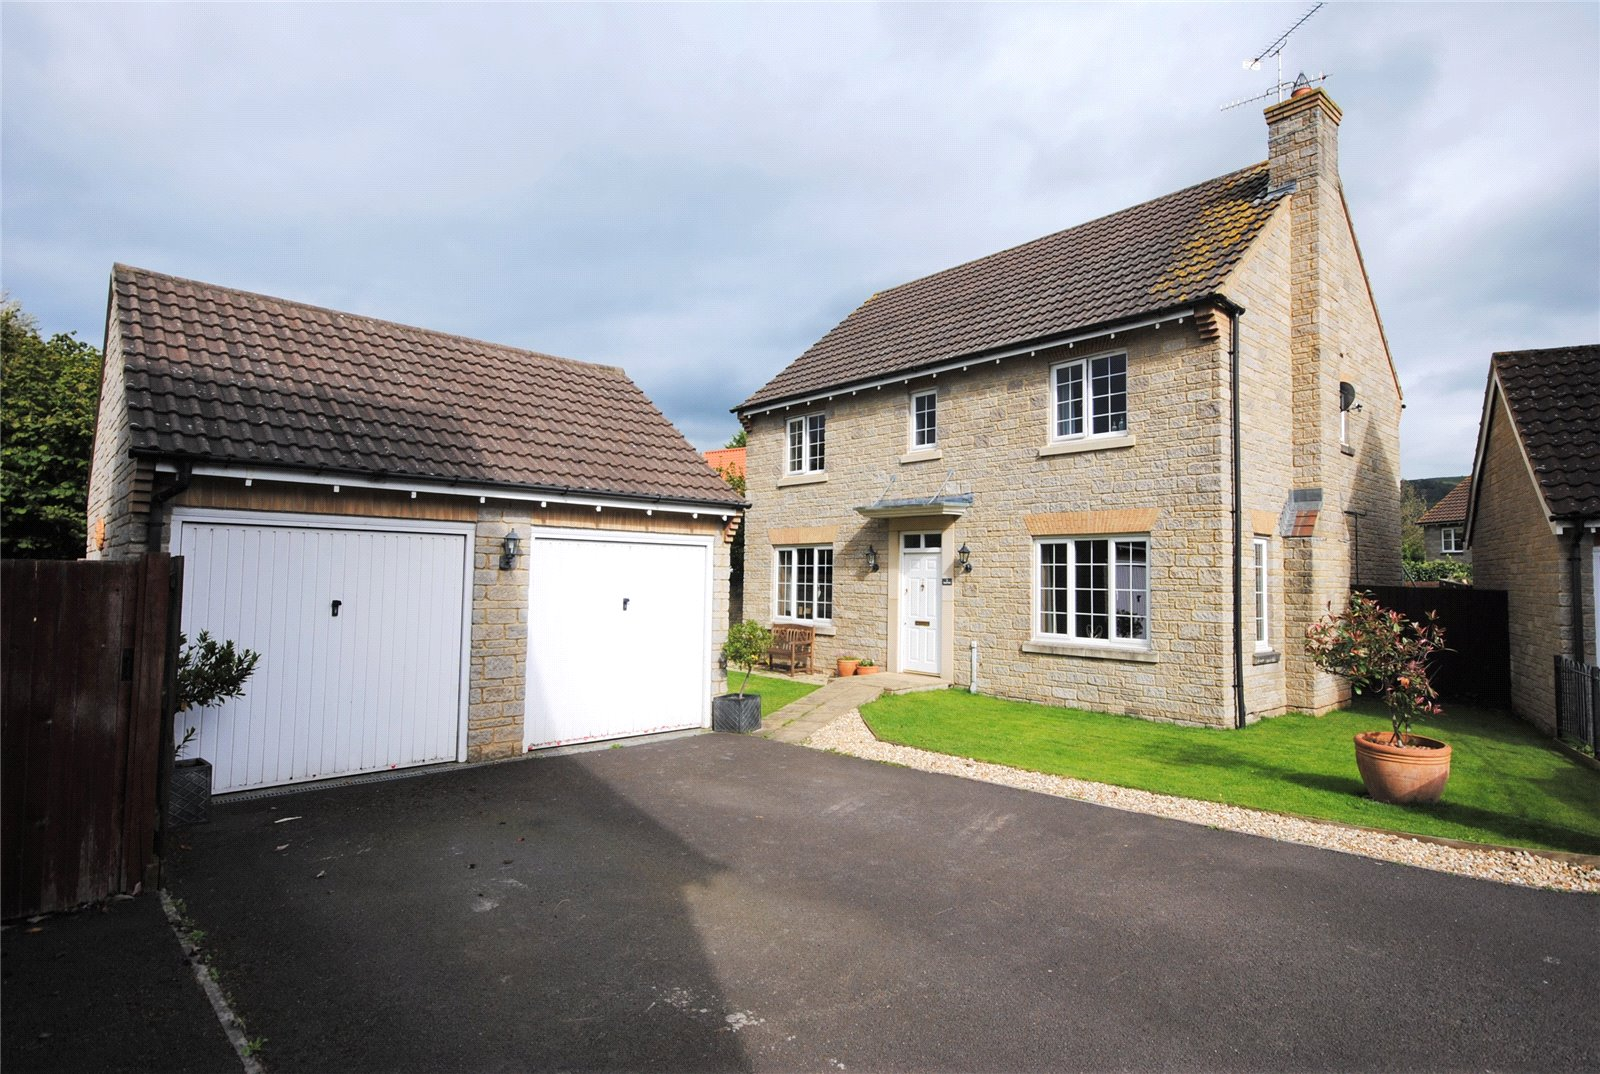 4 Bedrooms Detached House for sale in Tower Close Cheddar Somerset BS27